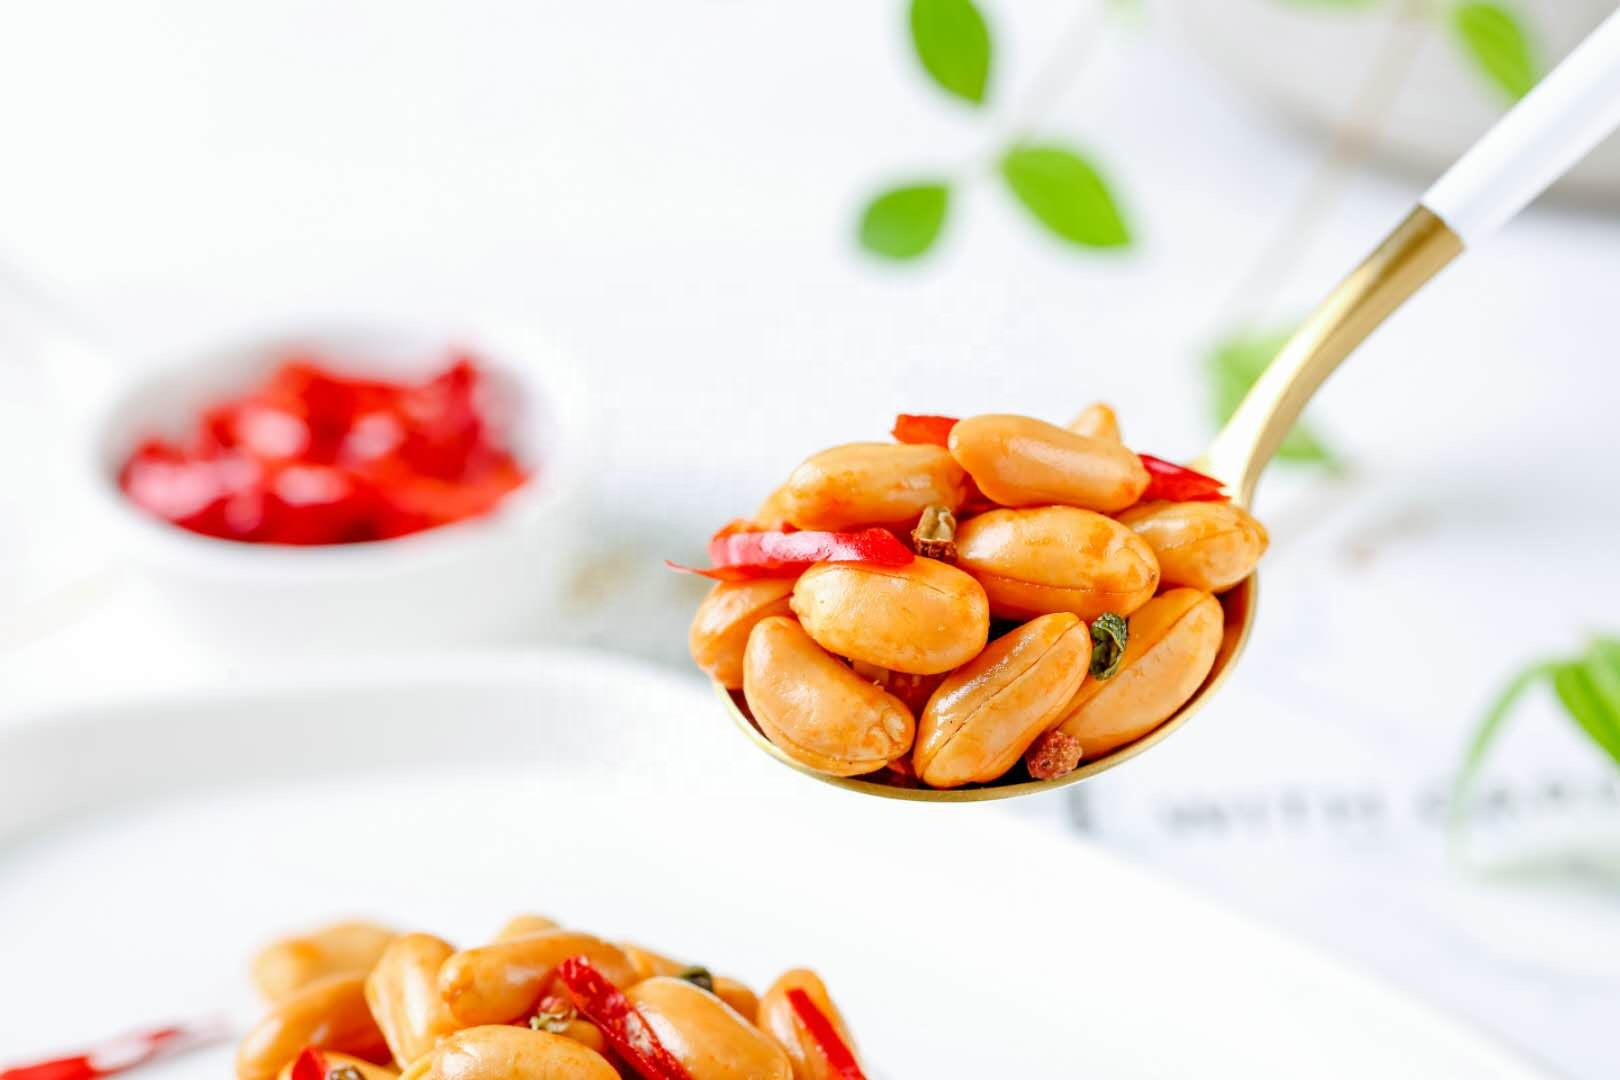 Chinese Ground nuts Peanuts Import and Export Peanuts